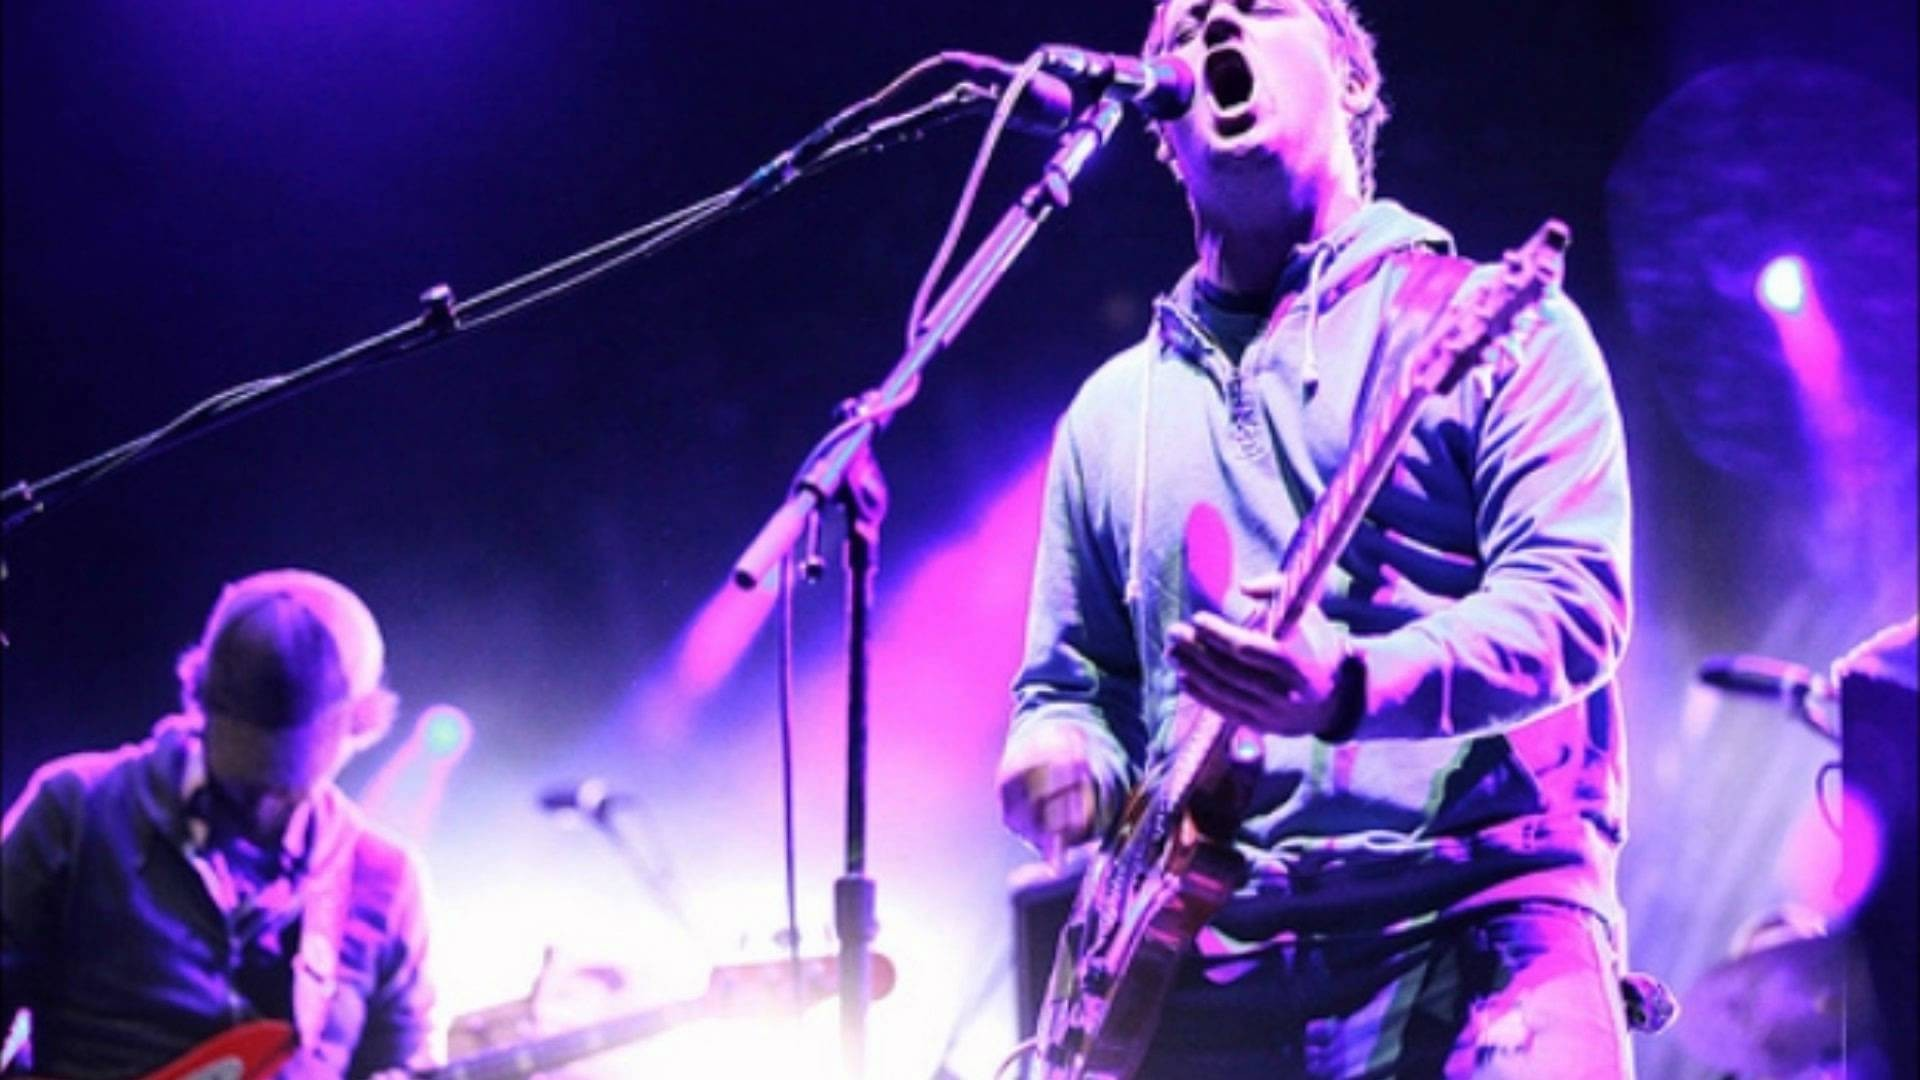 Modest Mouse join Instagram, tease new music in first post